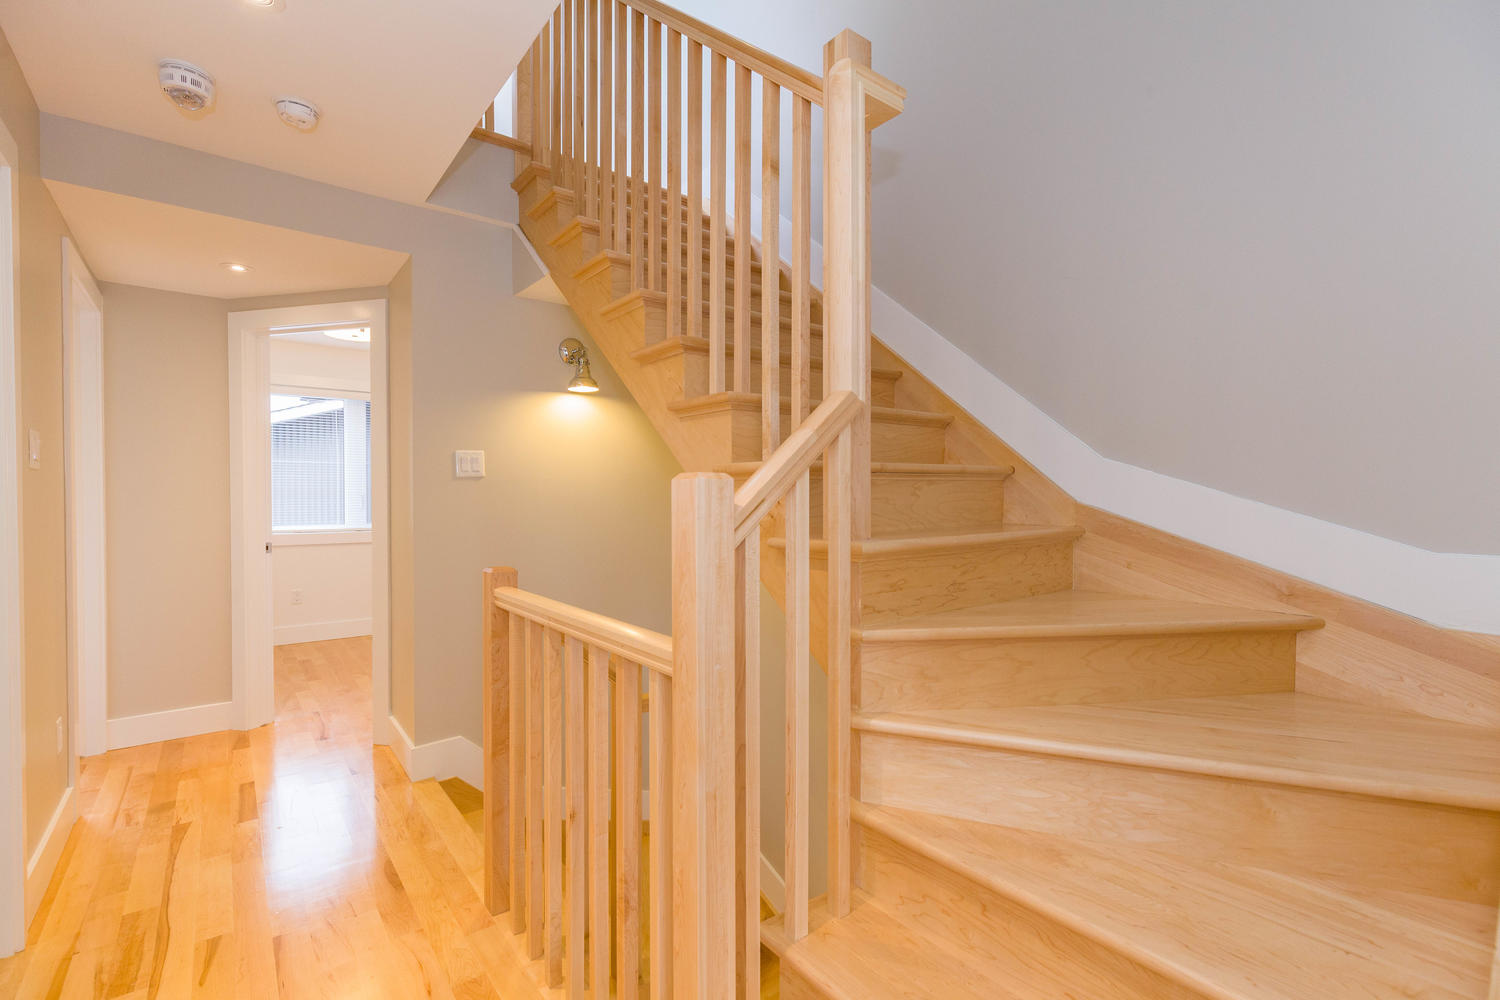 Gorgeous wood stair cases top carrying you up 4 floors.